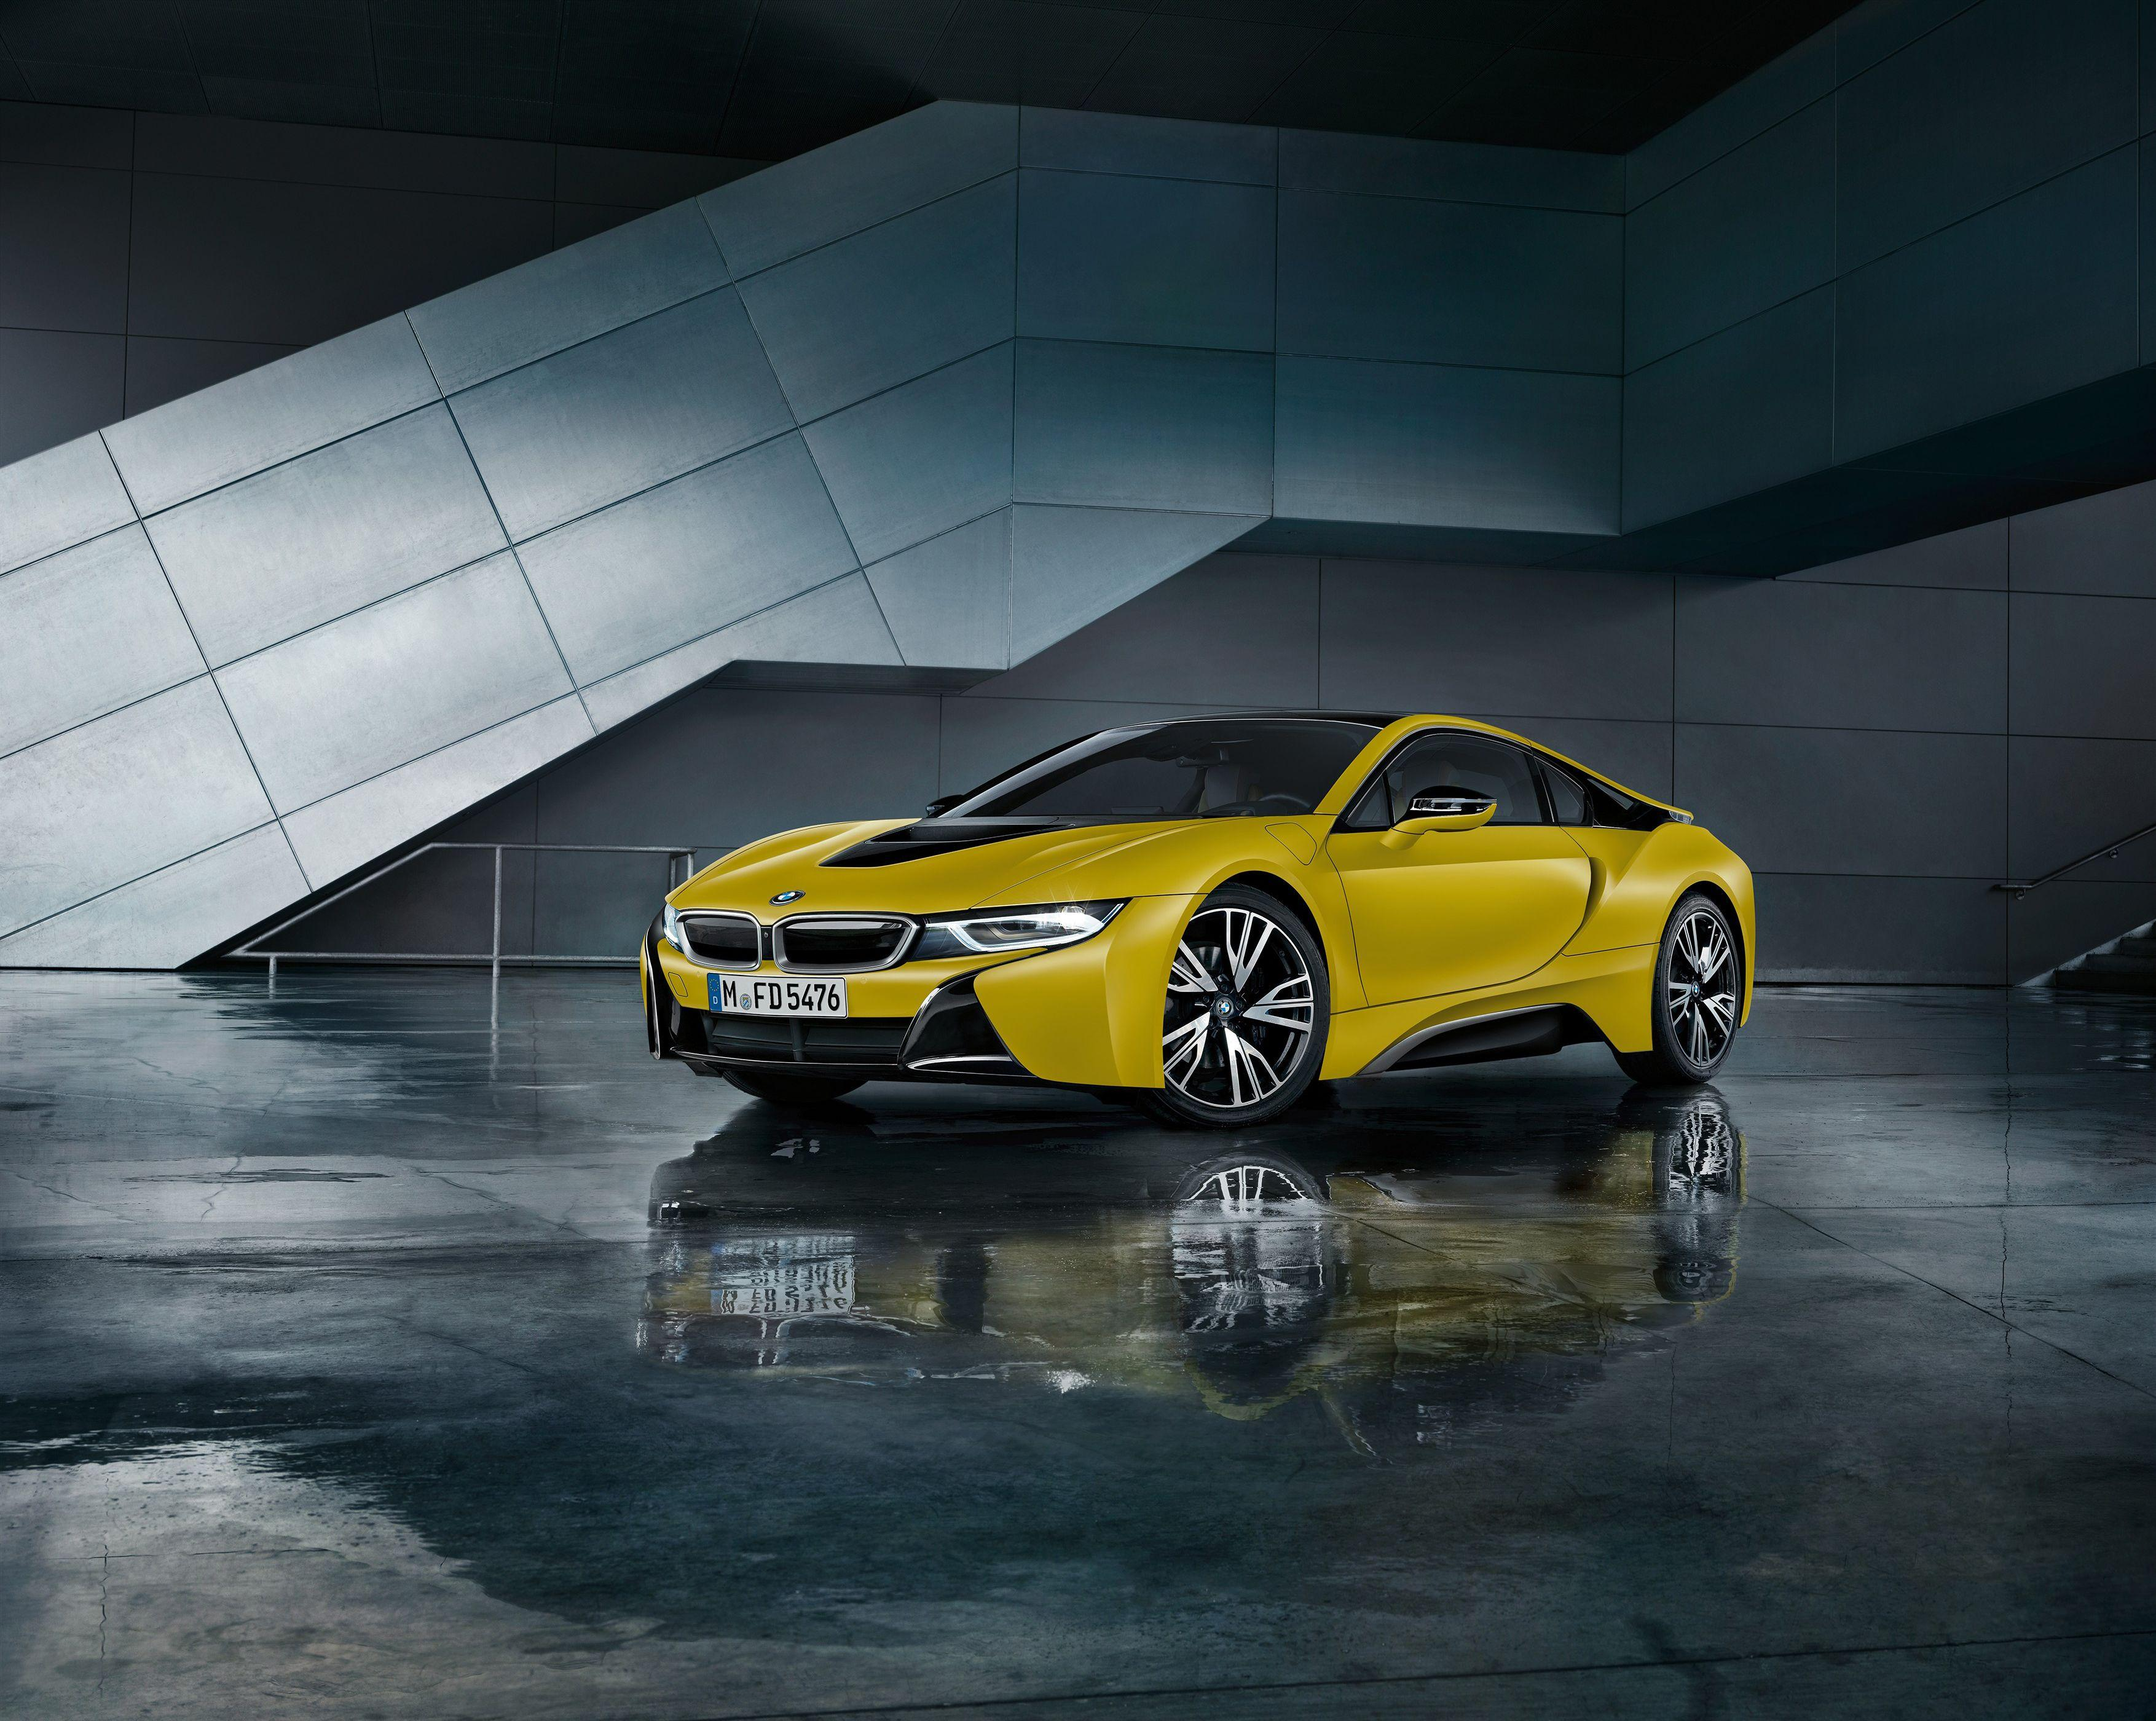 2018 Bmw I8 4k, HD Cars, 4k Wallpapers, Image, Backgrounds